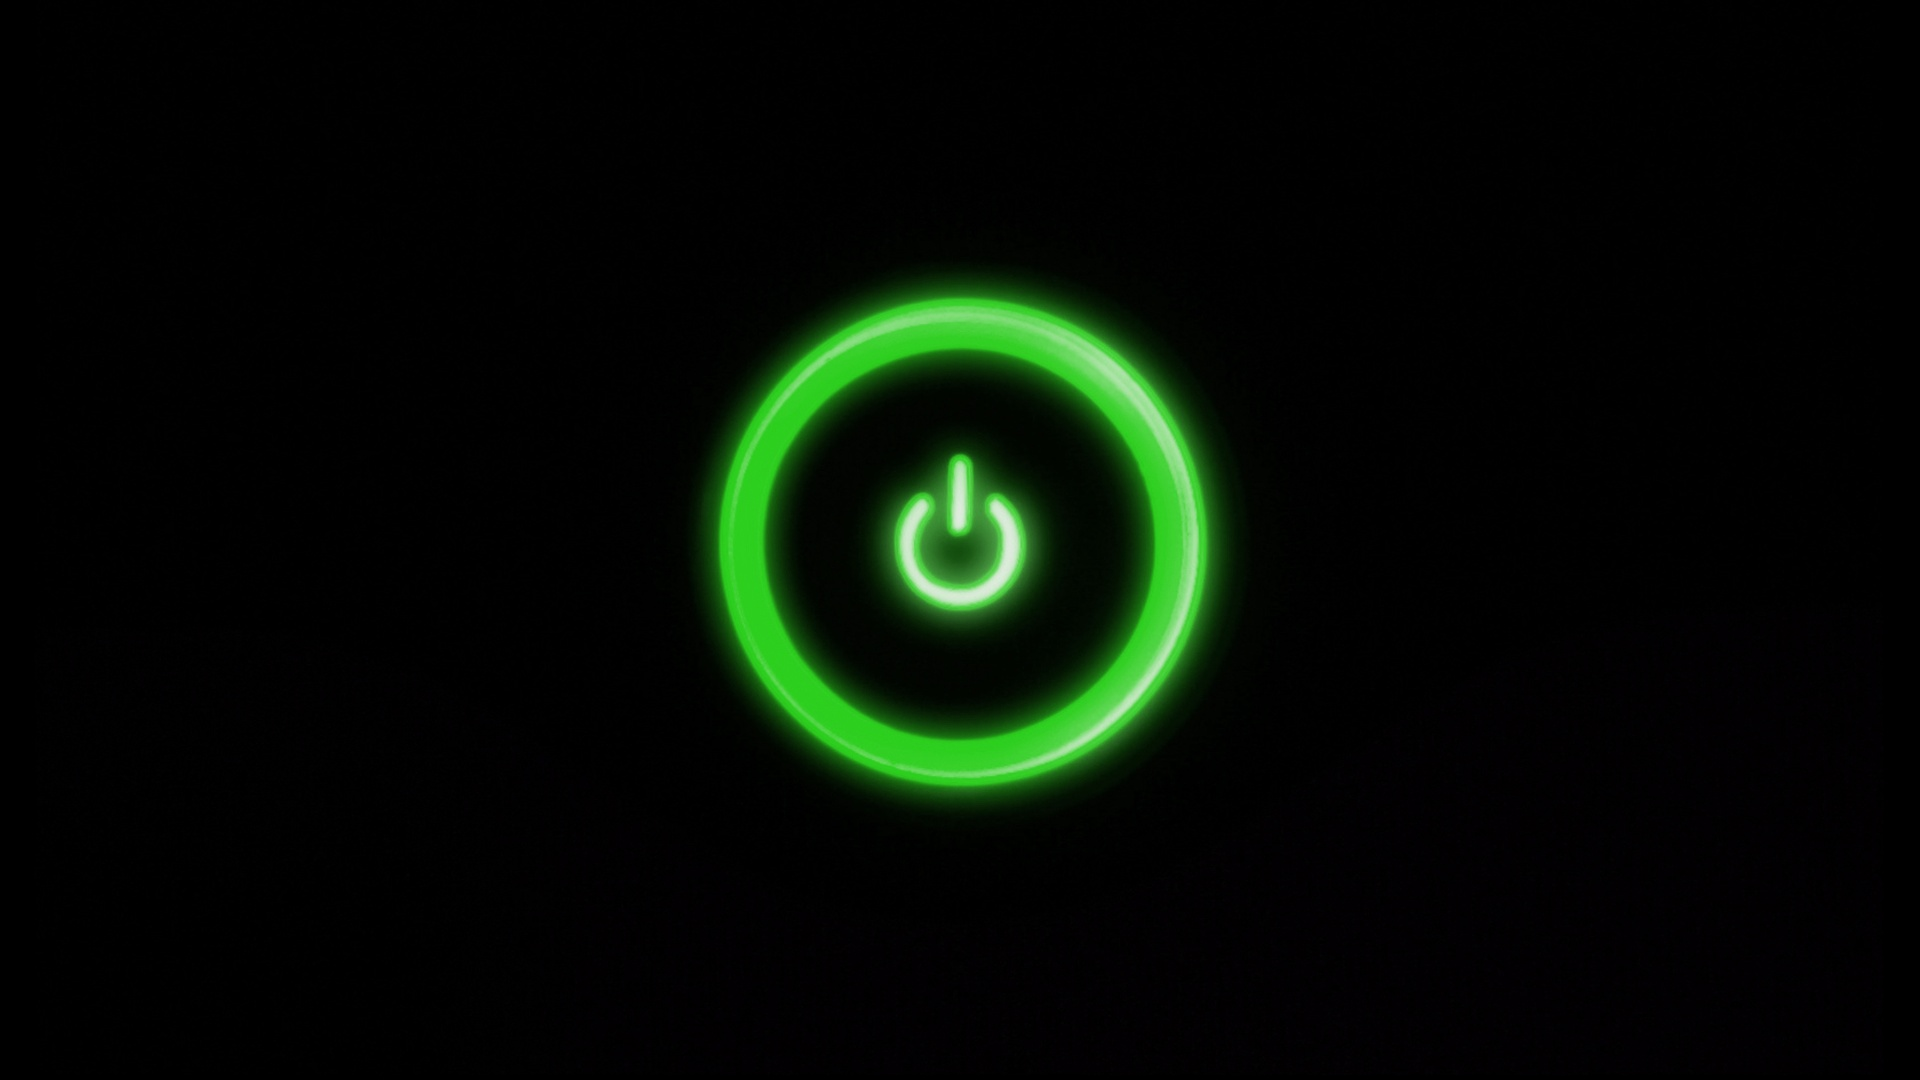 1920x1080 Green Power Button